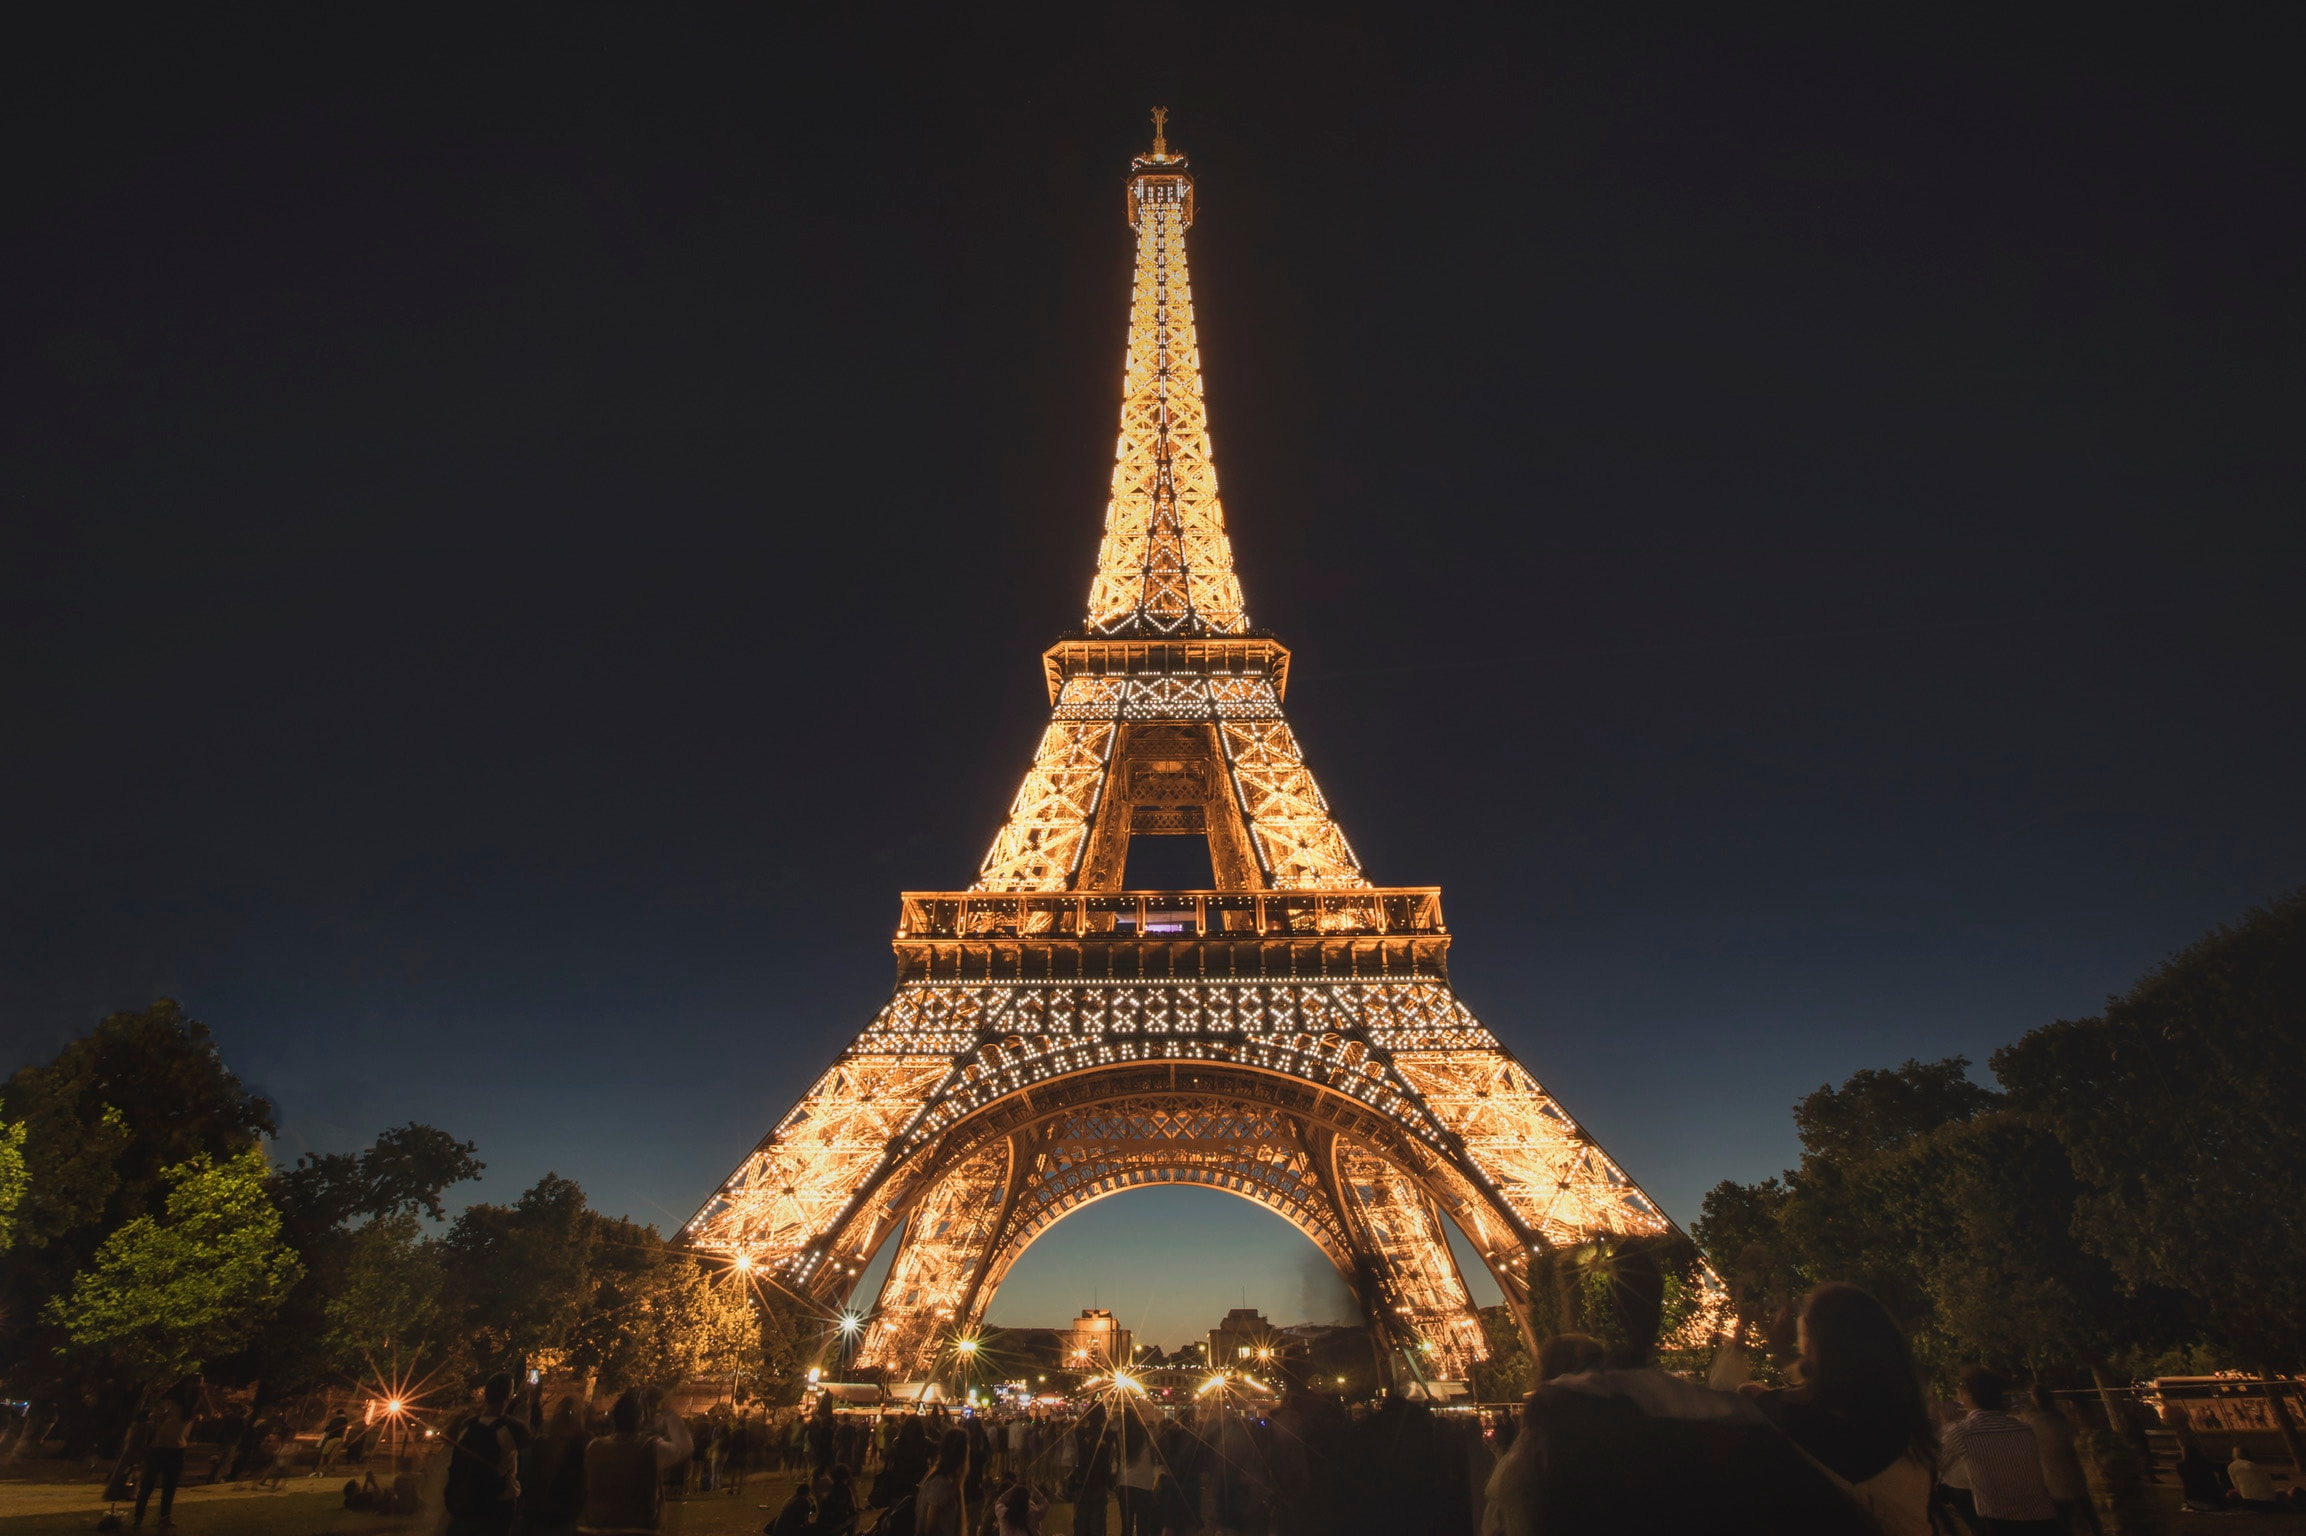 10 Things to know about the Legendary Eiffel Tower: The Iron Lady of Paris!